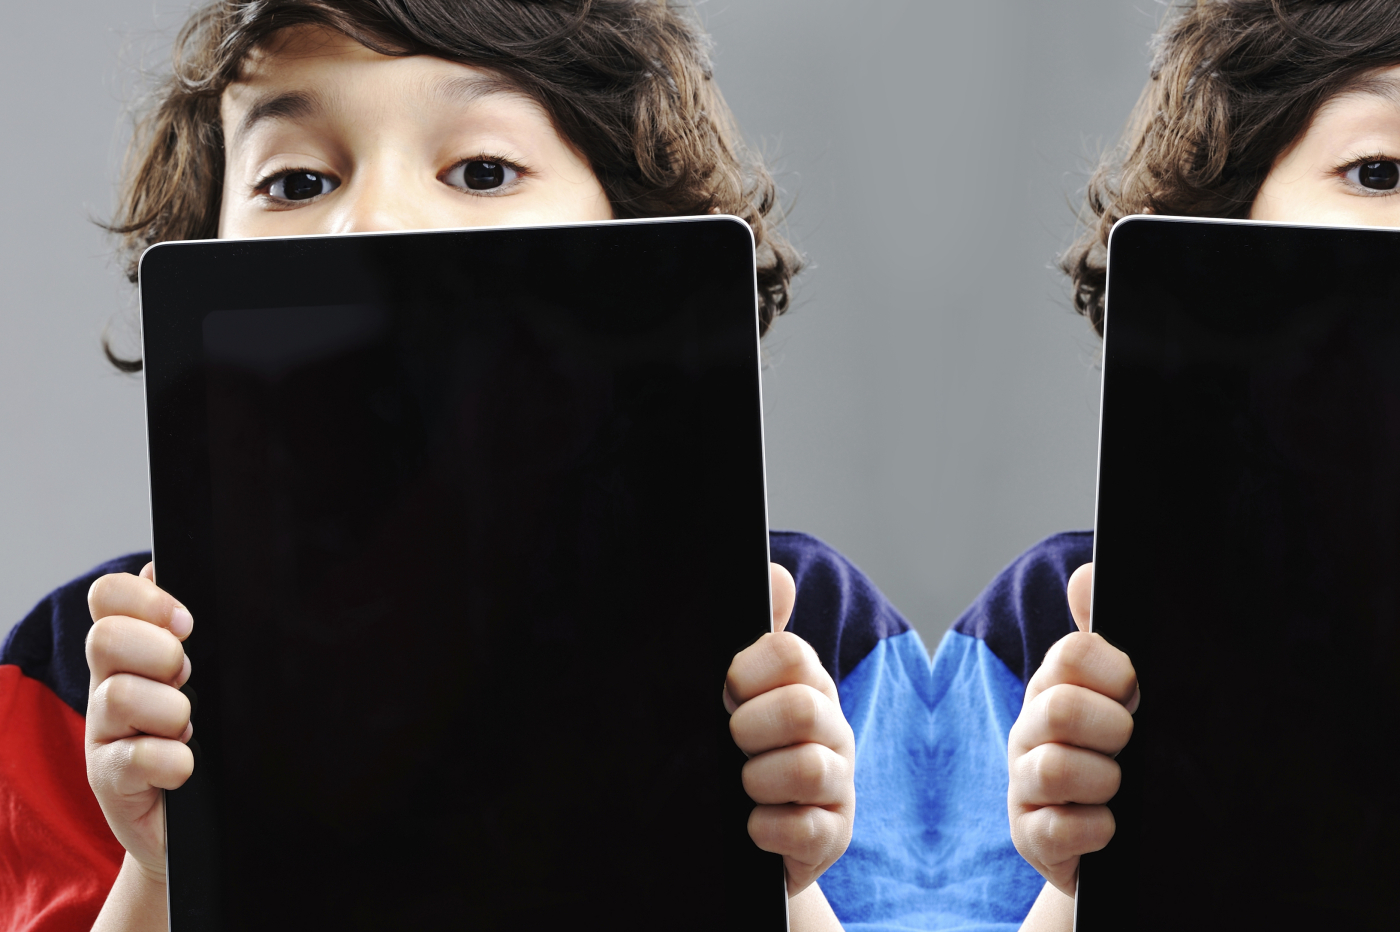 The vast majority of parents support more digital lessons